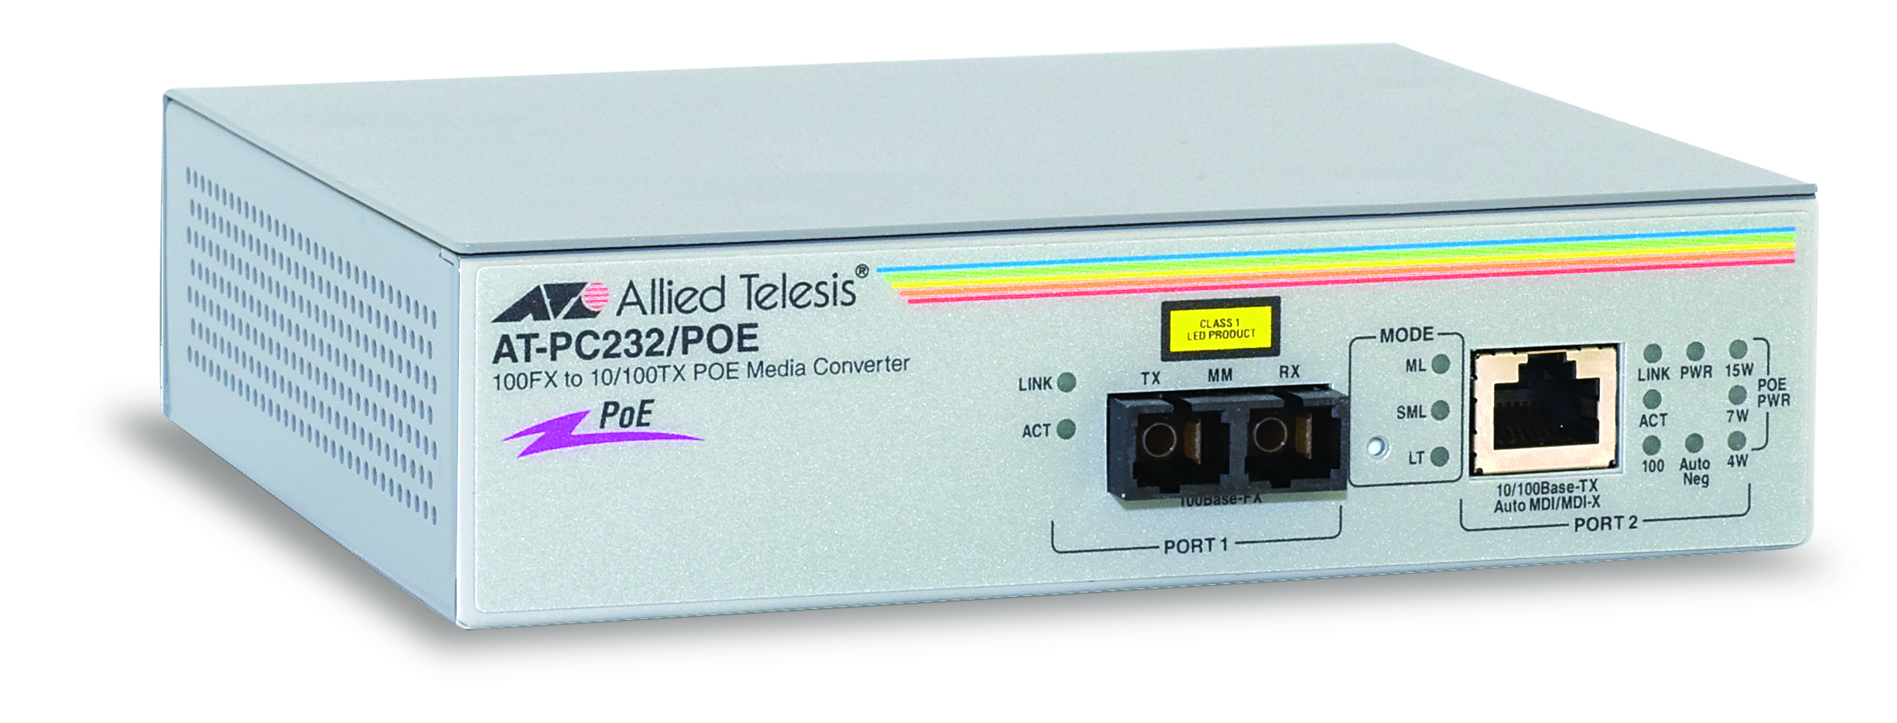 Allied Telesis AT-PC232/POE-20